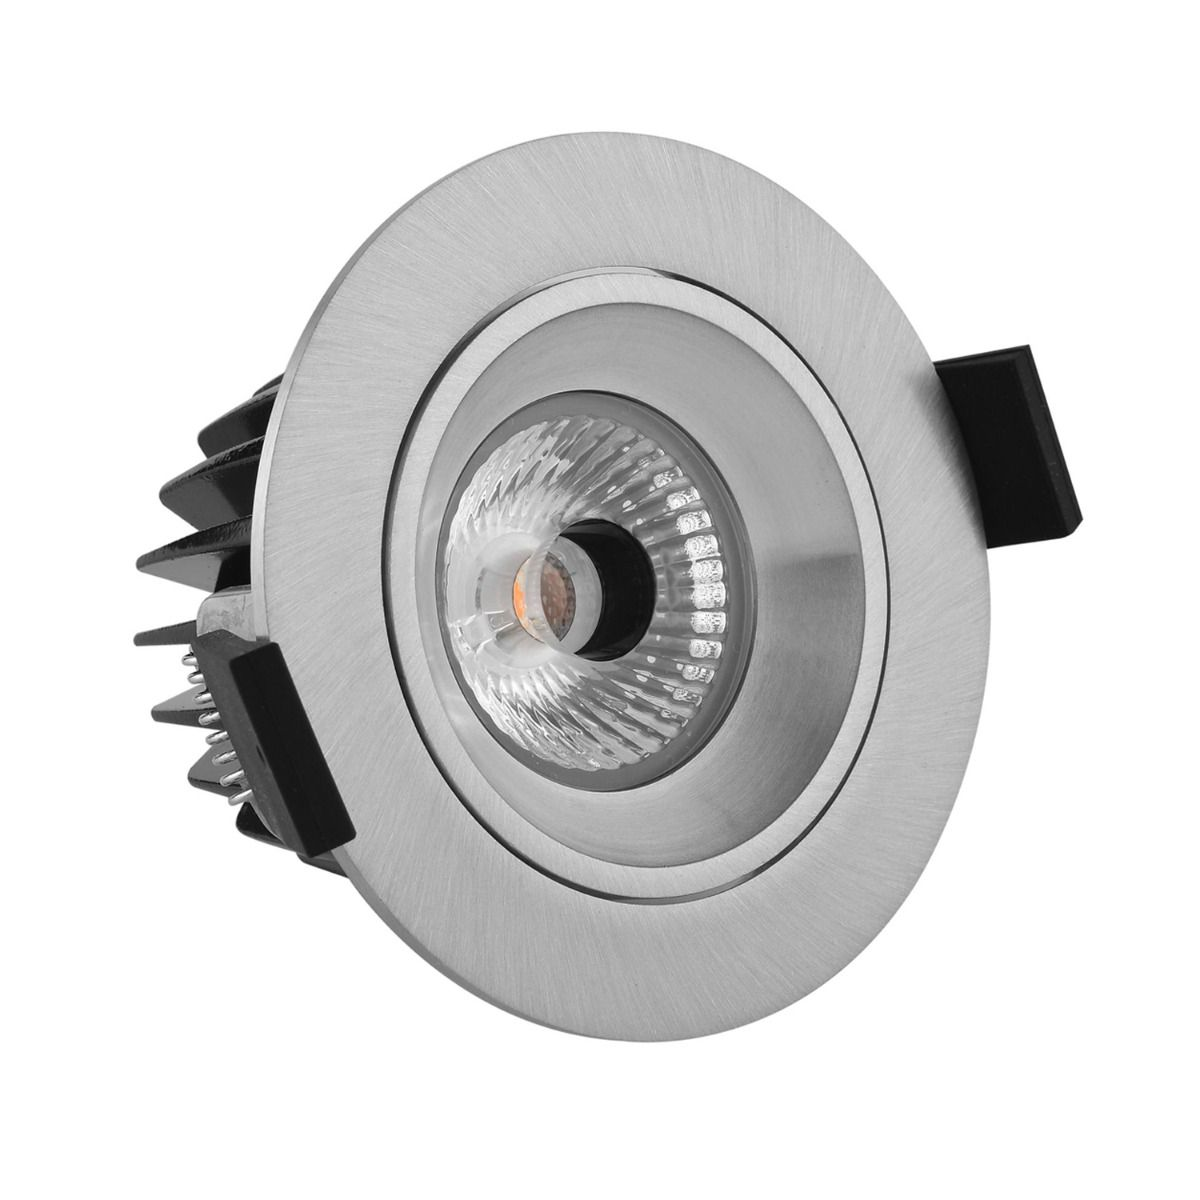 Noxion Spot LED Diamond IP44 2700K Aluminium | Dimmable